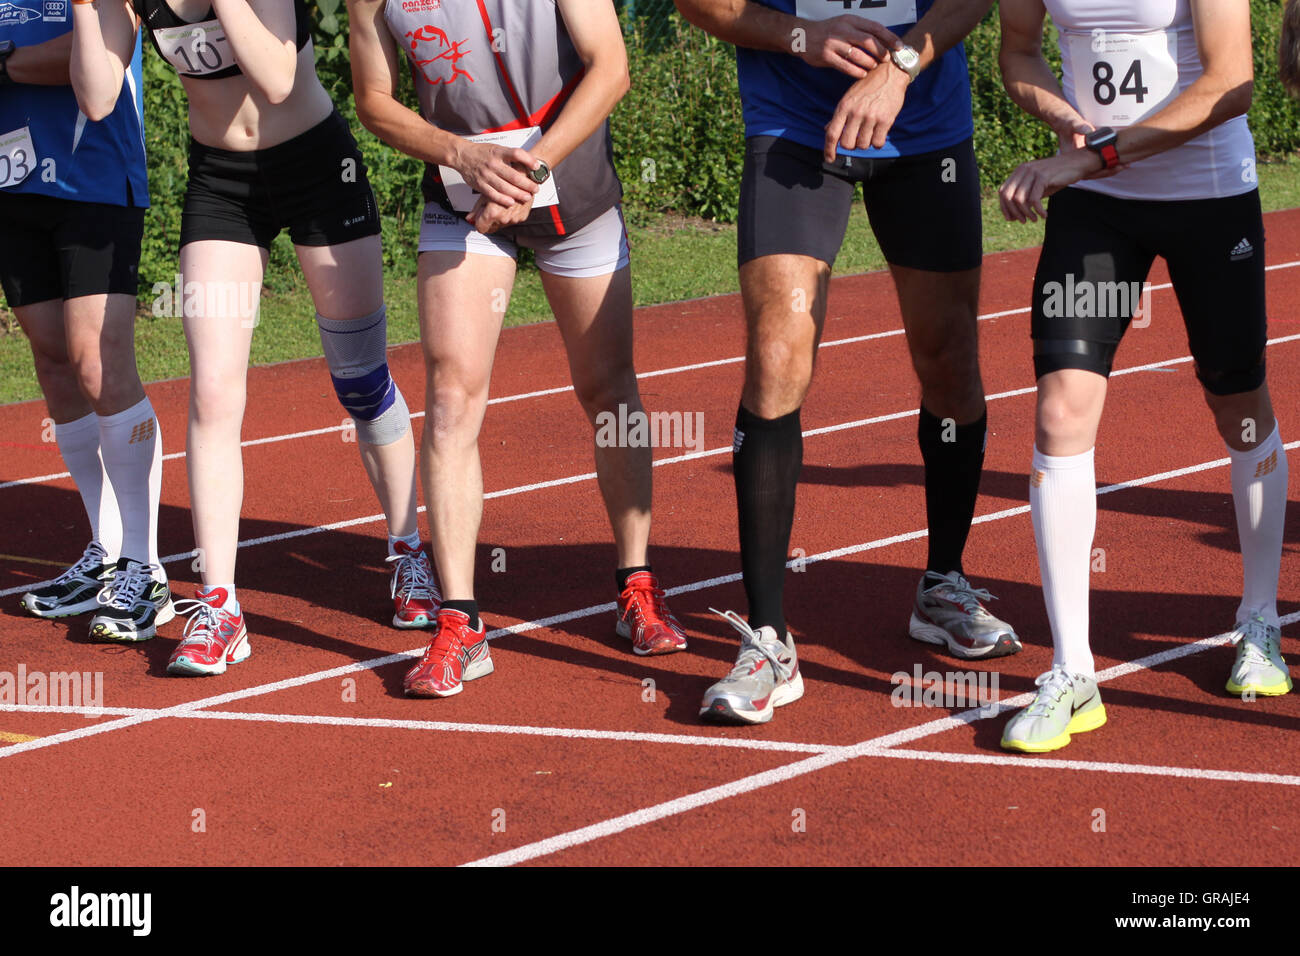 Running - Stock Image